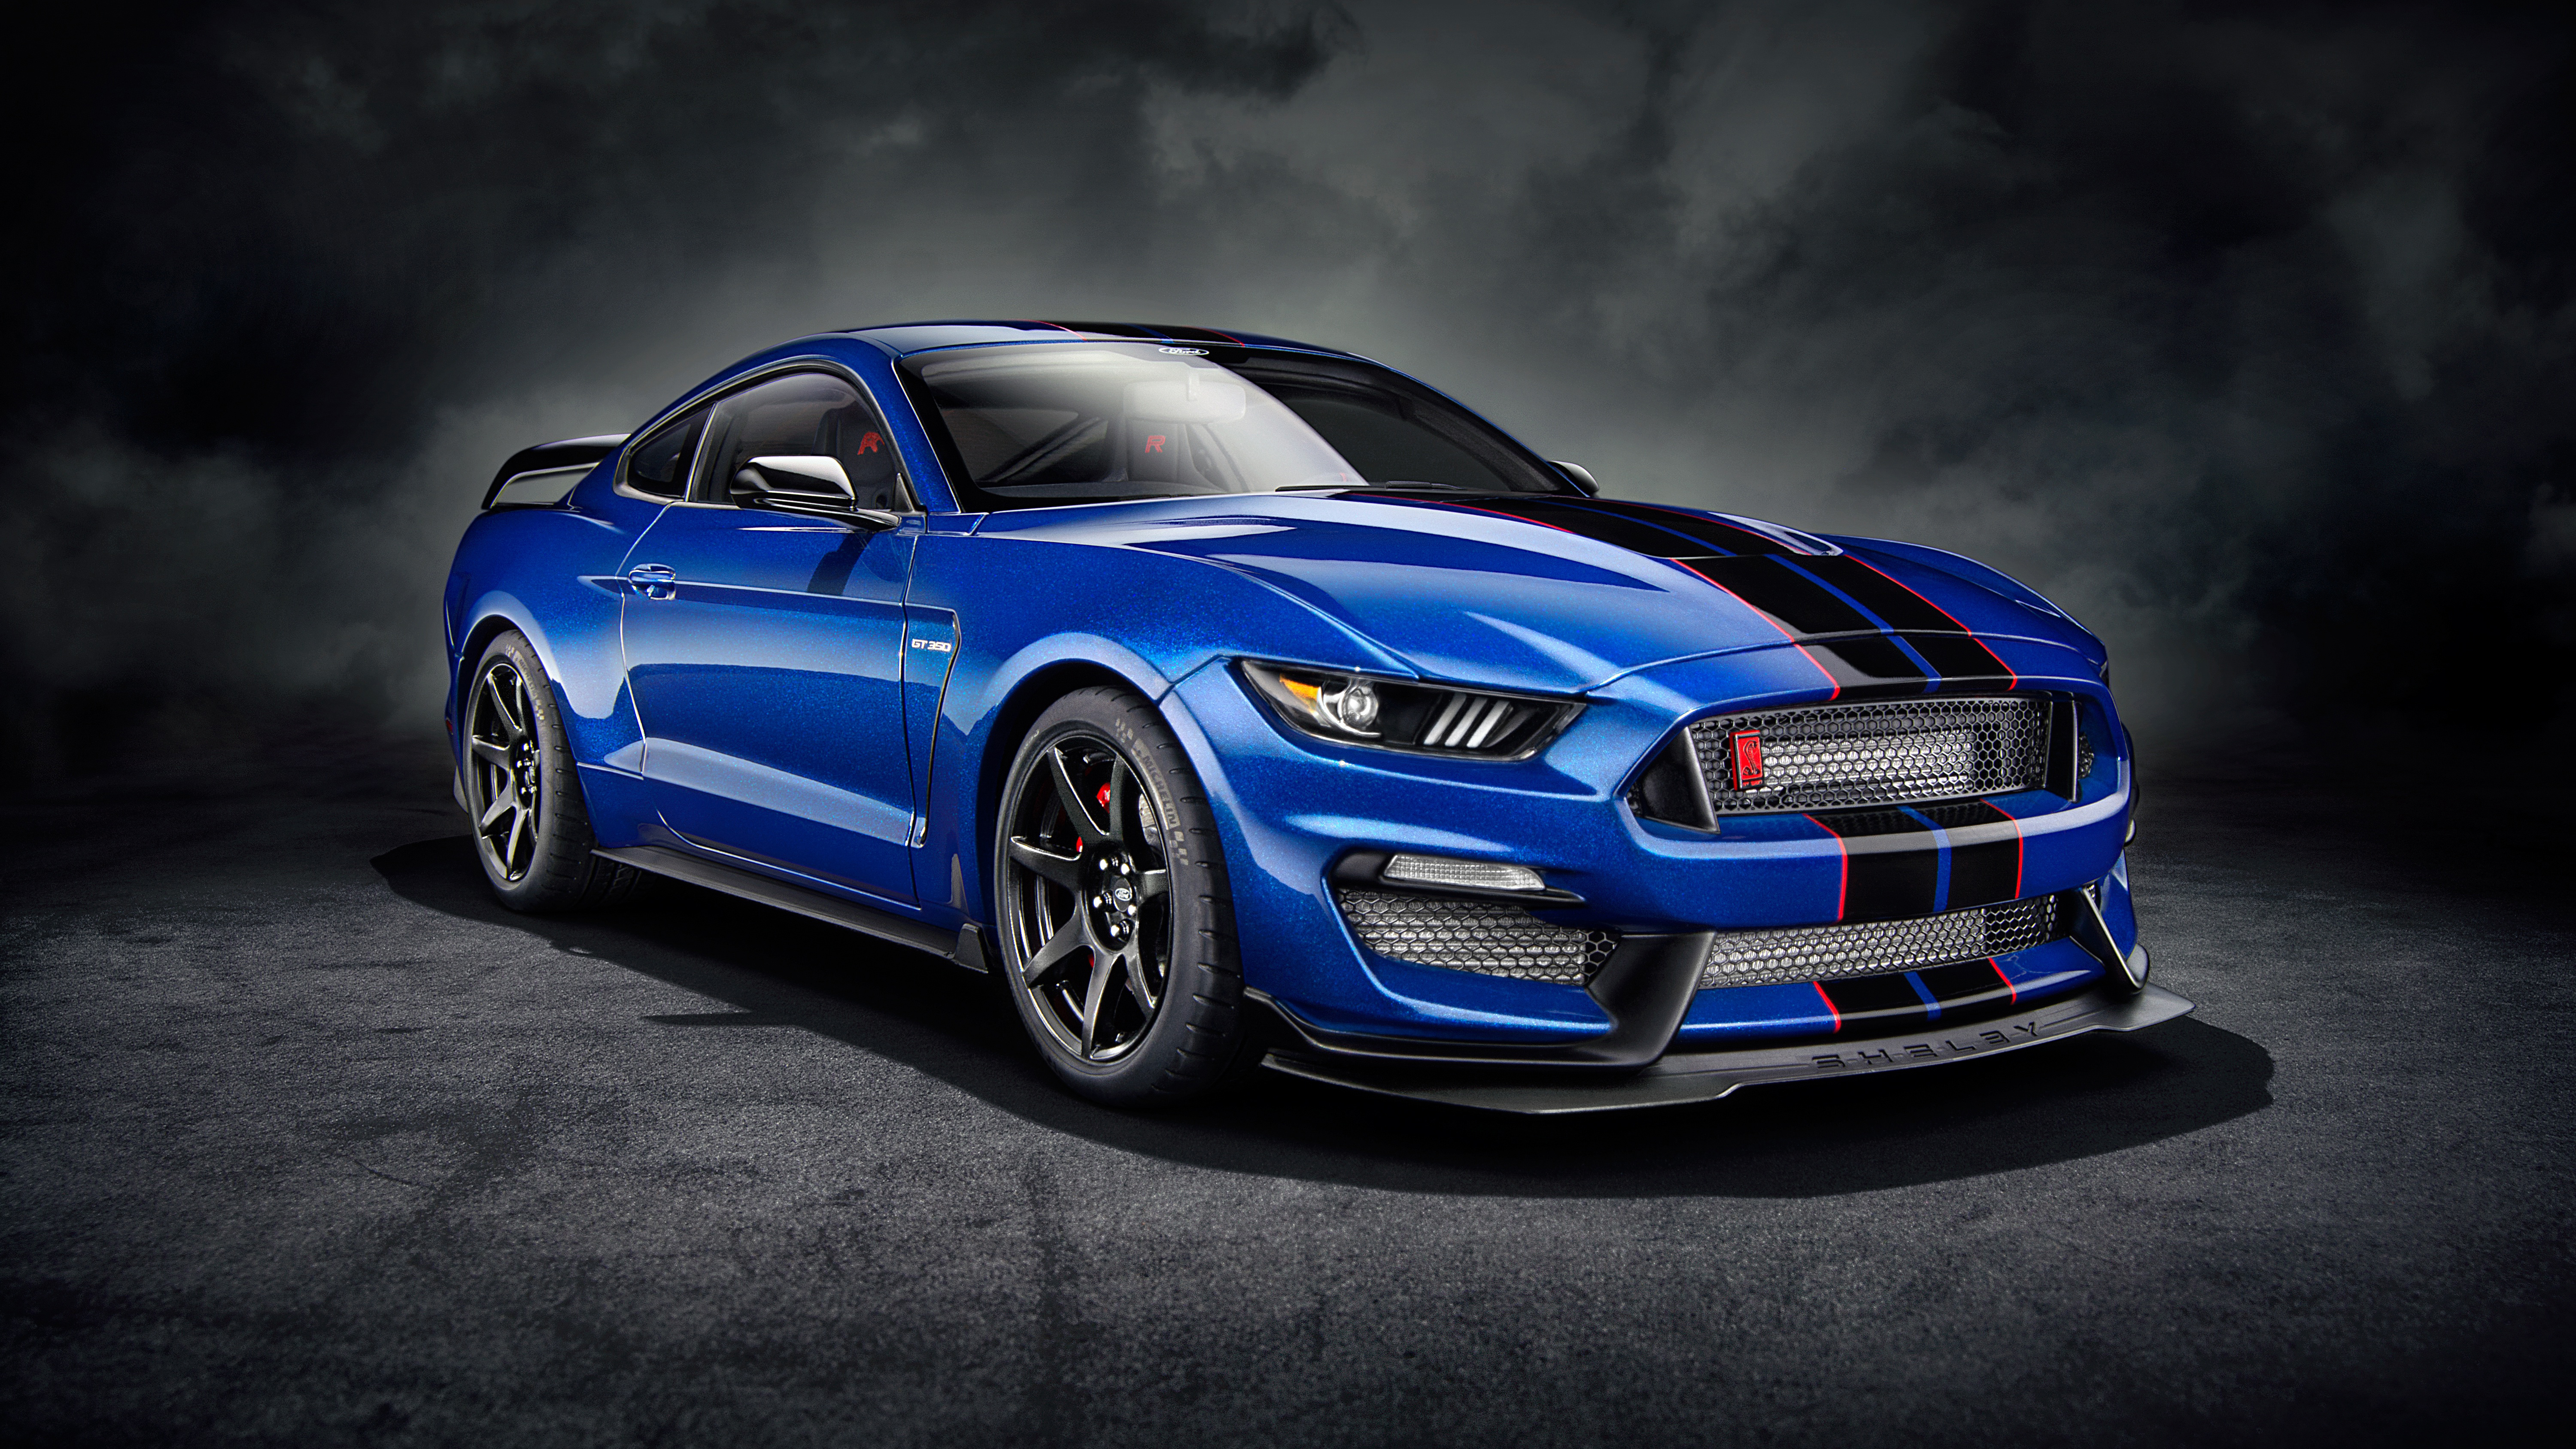 Ford Mustang Shelby GT350 R Wallpaper | HD Car Wallpapers ...